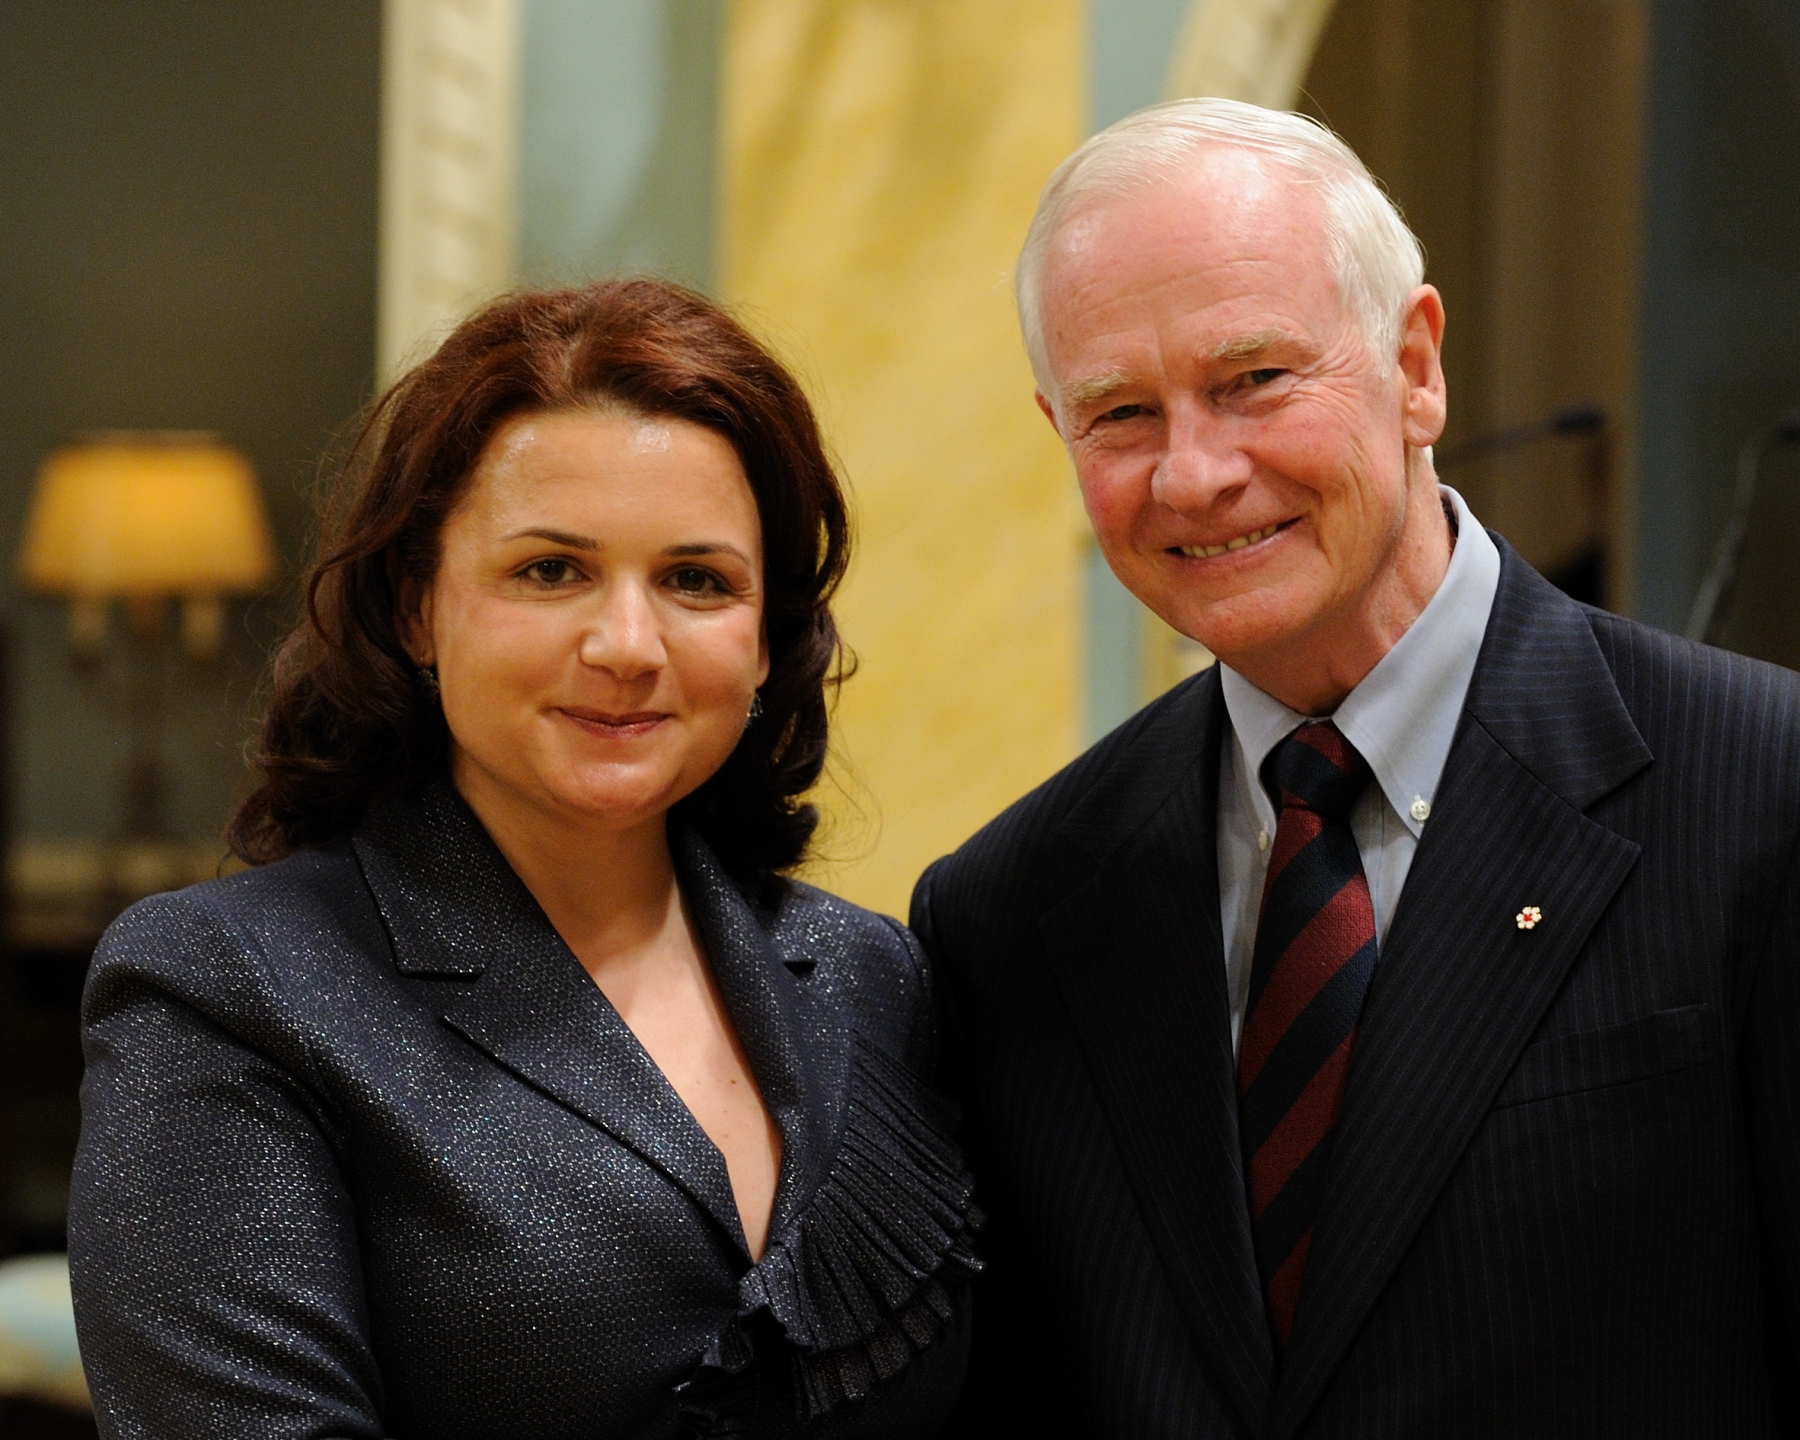 The Governor General received the credentials of Her Excellency Elida Petoshati, Ambassador of the Republic of Albania.